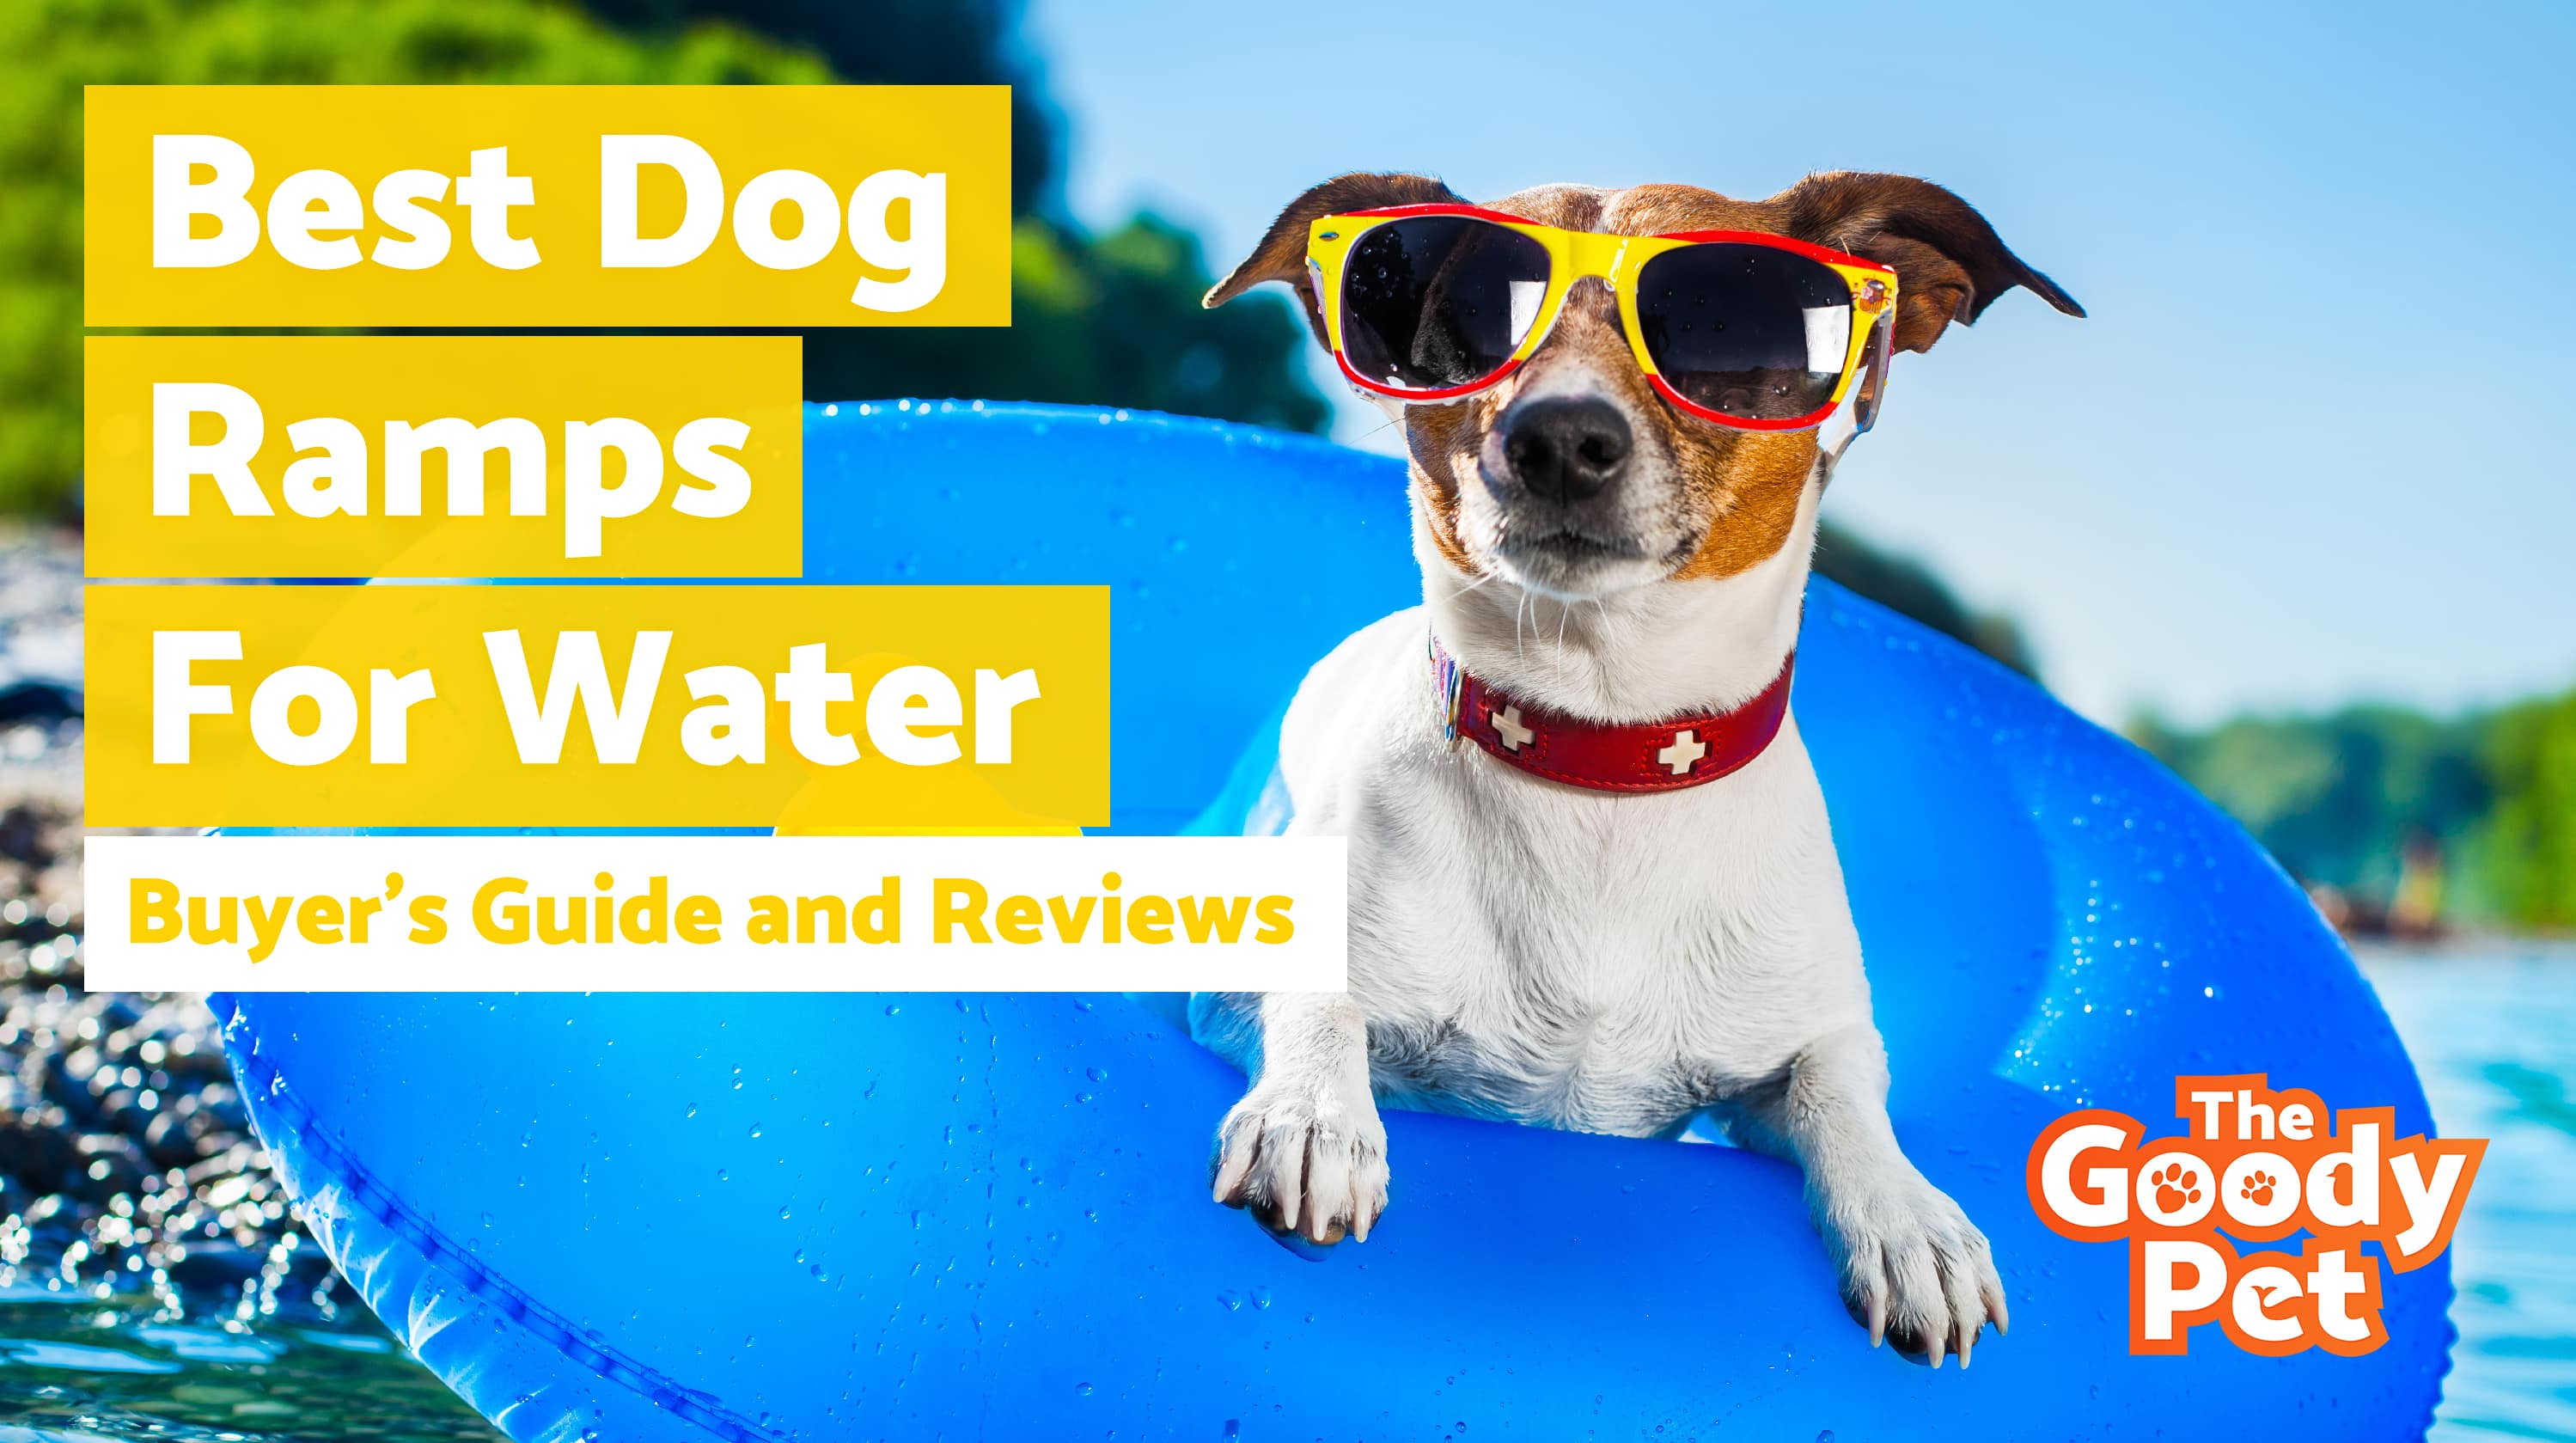 Best Dog Ramps For Water (Endless Summer Fun!) – Our 2019 Reviews & Top Picks